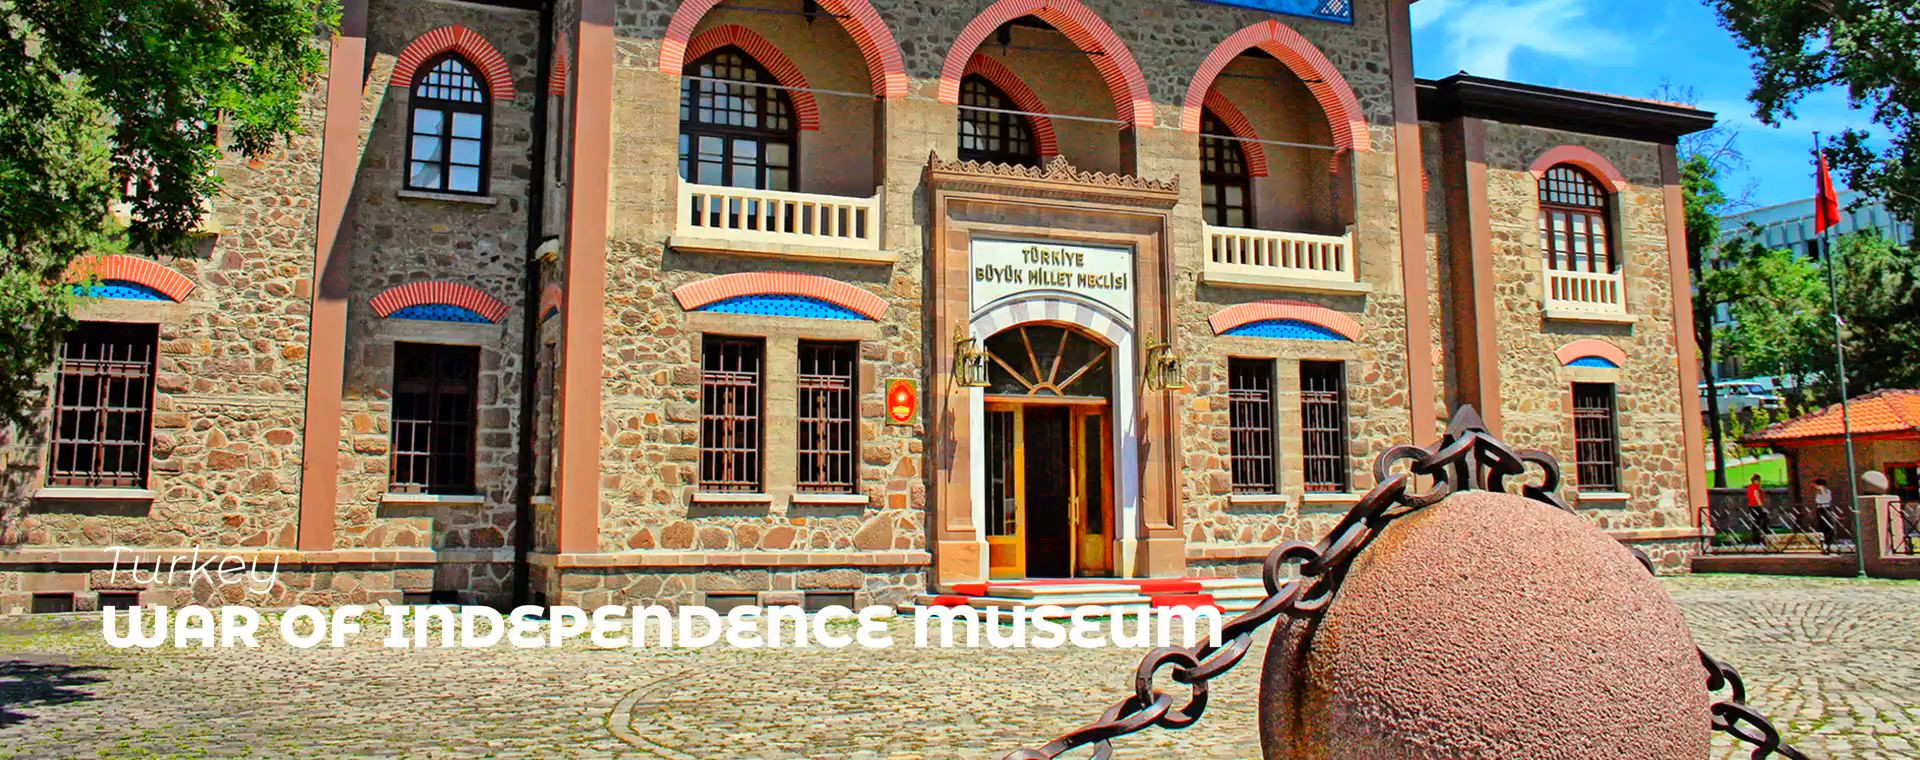 WAR OF INDEPENDENCE MUSEUM